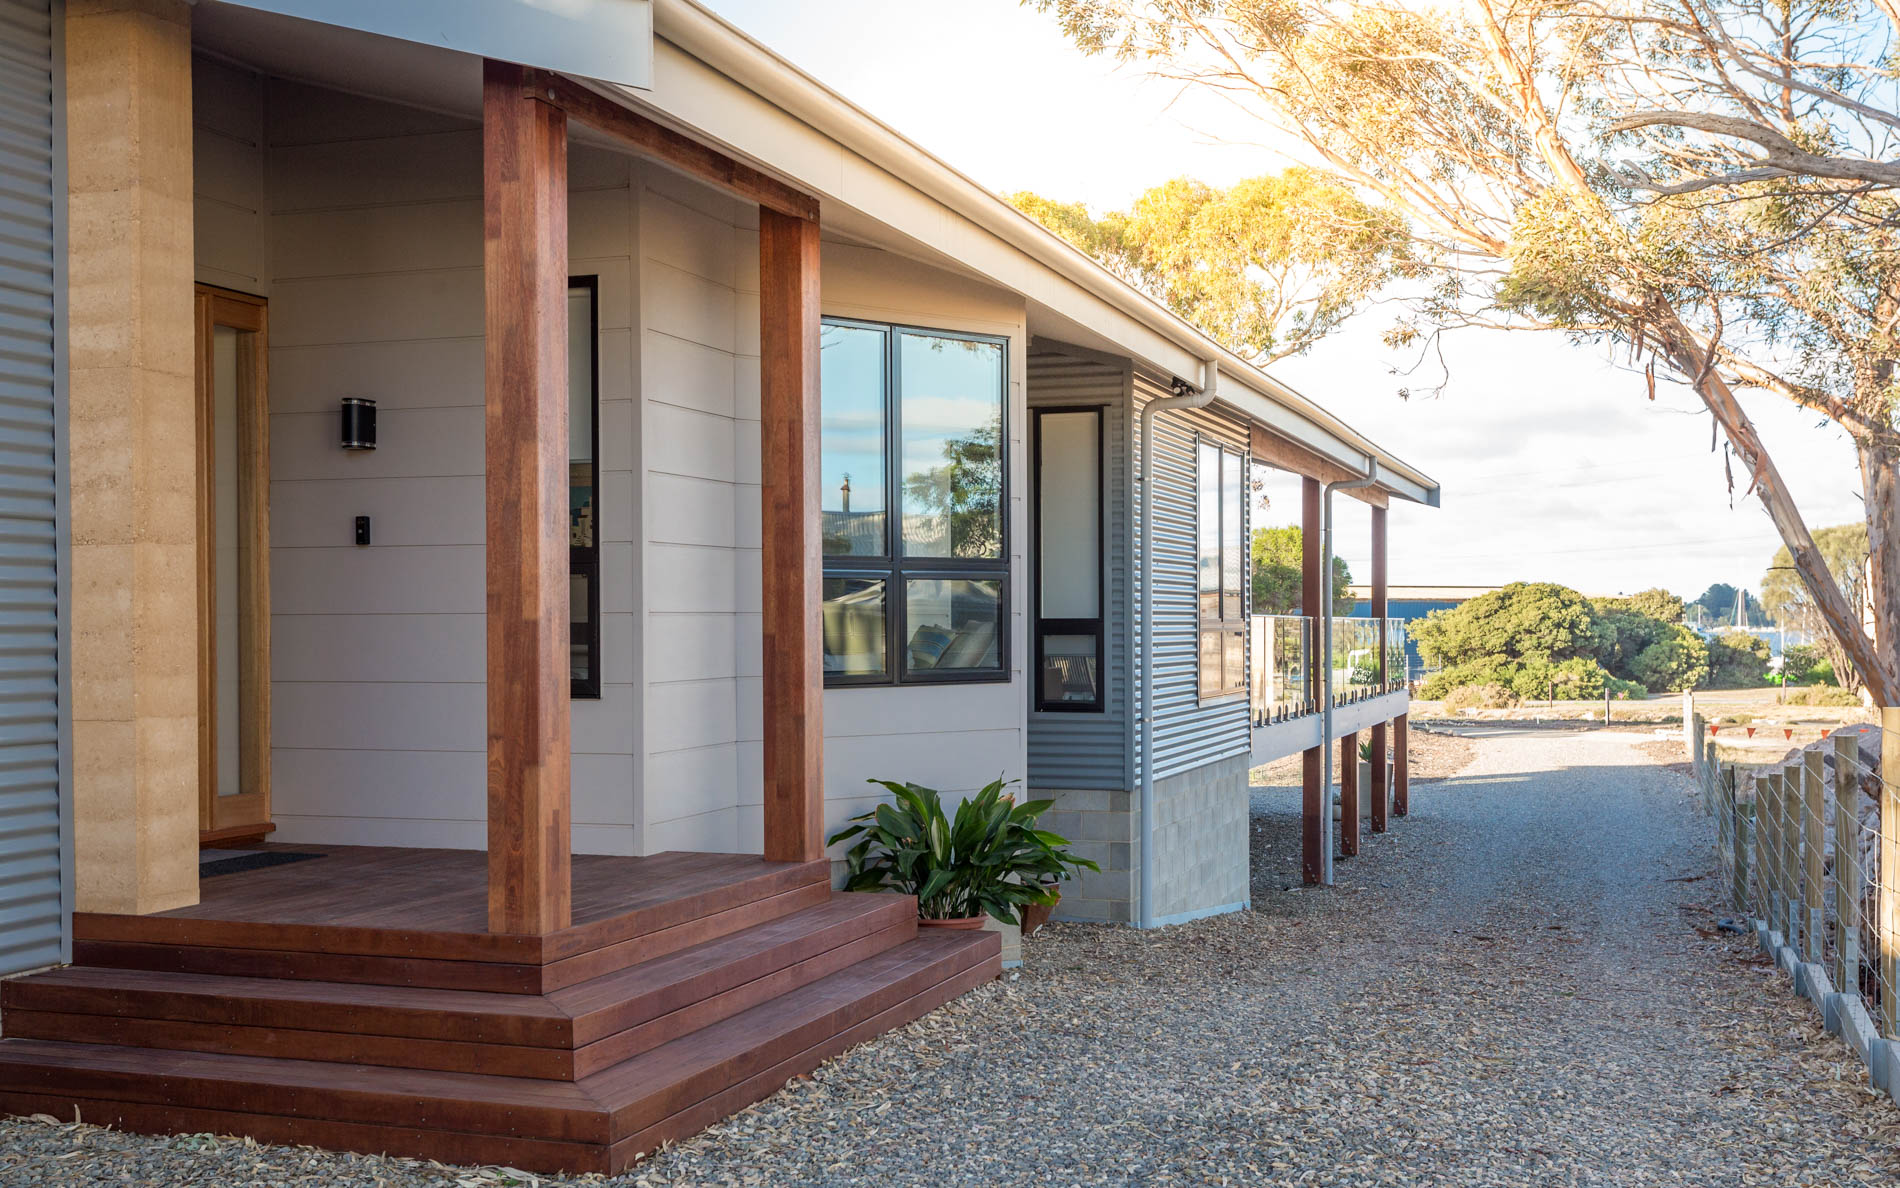 New Home, Custom Home, Family Home, Design, Builders, Award Winning, Single Storey, Goolwa, Fleurieu, Entry, Steps, Driveway, Balustrades